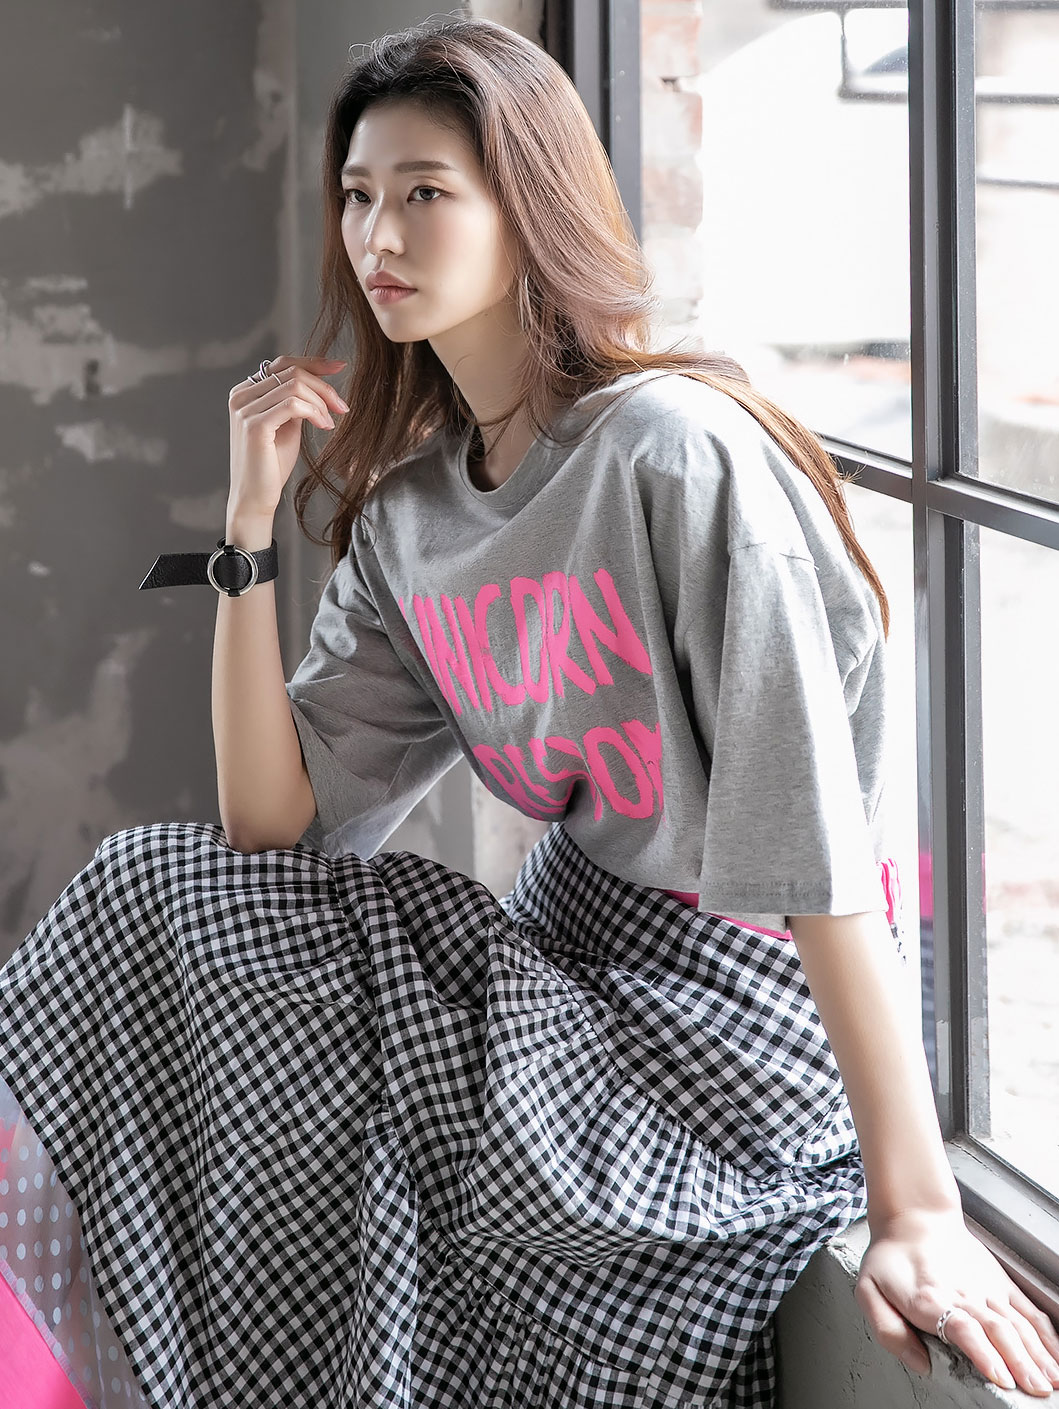 E2188 아테이 유니콘 Lettering Top(47th REORDER)